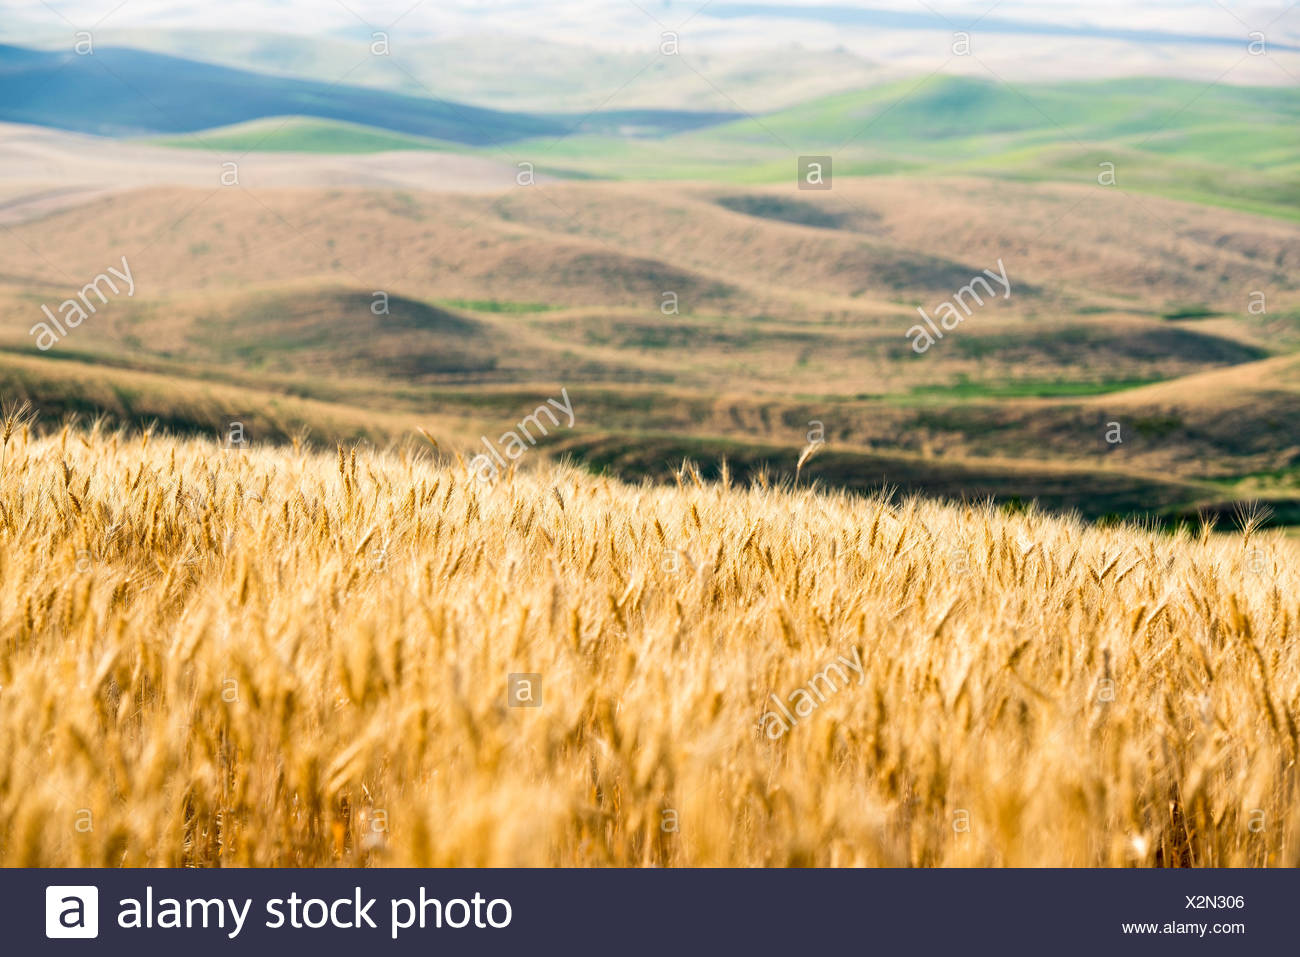 Wheat field with rolling hills of the Palouse in background. Washington State, USA. - Stock Image